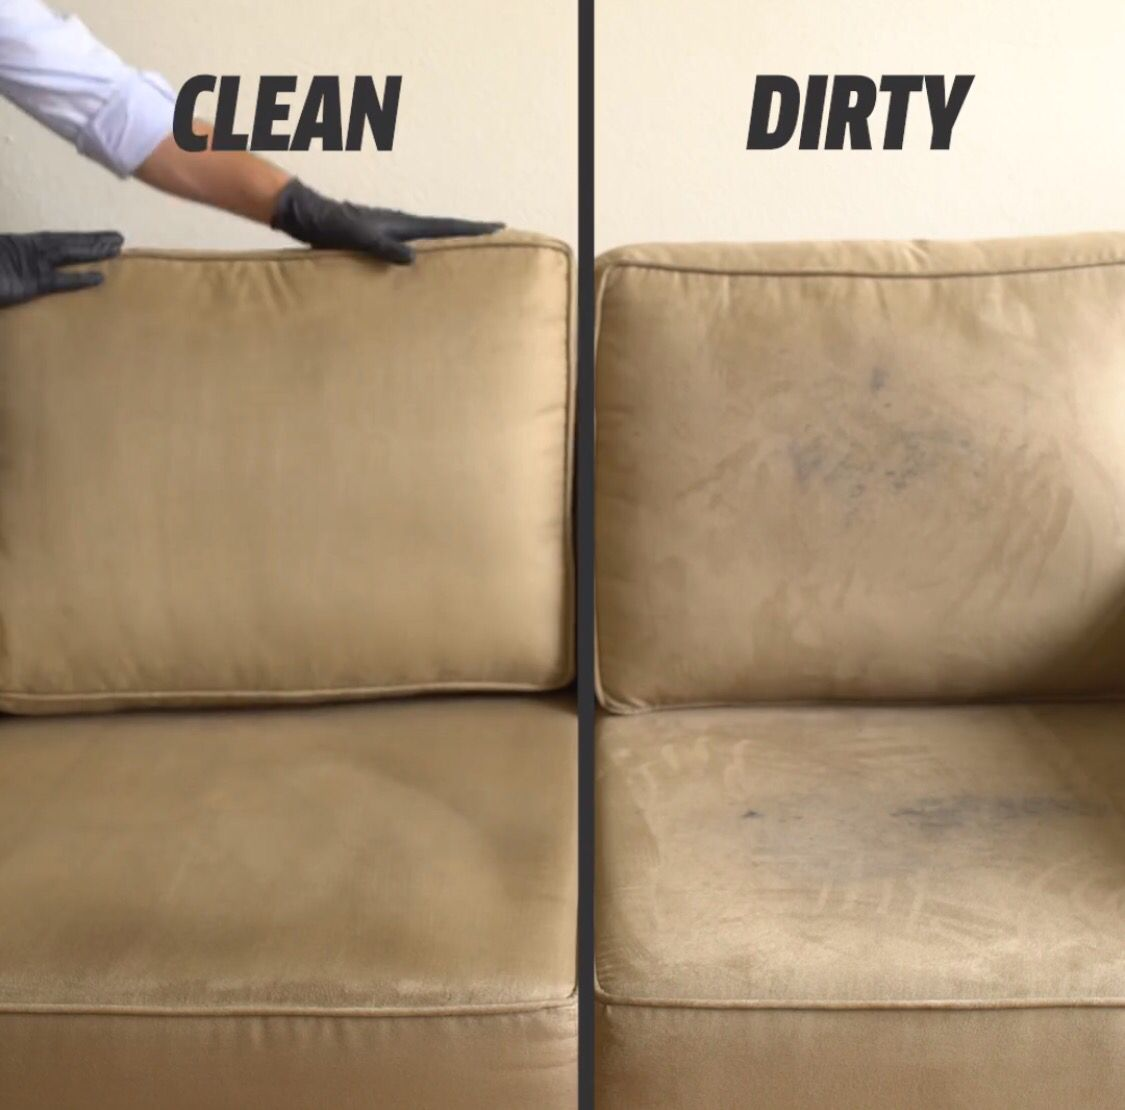 How To Clean Fabric Couch Diy Couch Cleaner 17oz Water 5oz Alcohol 3 4oz White